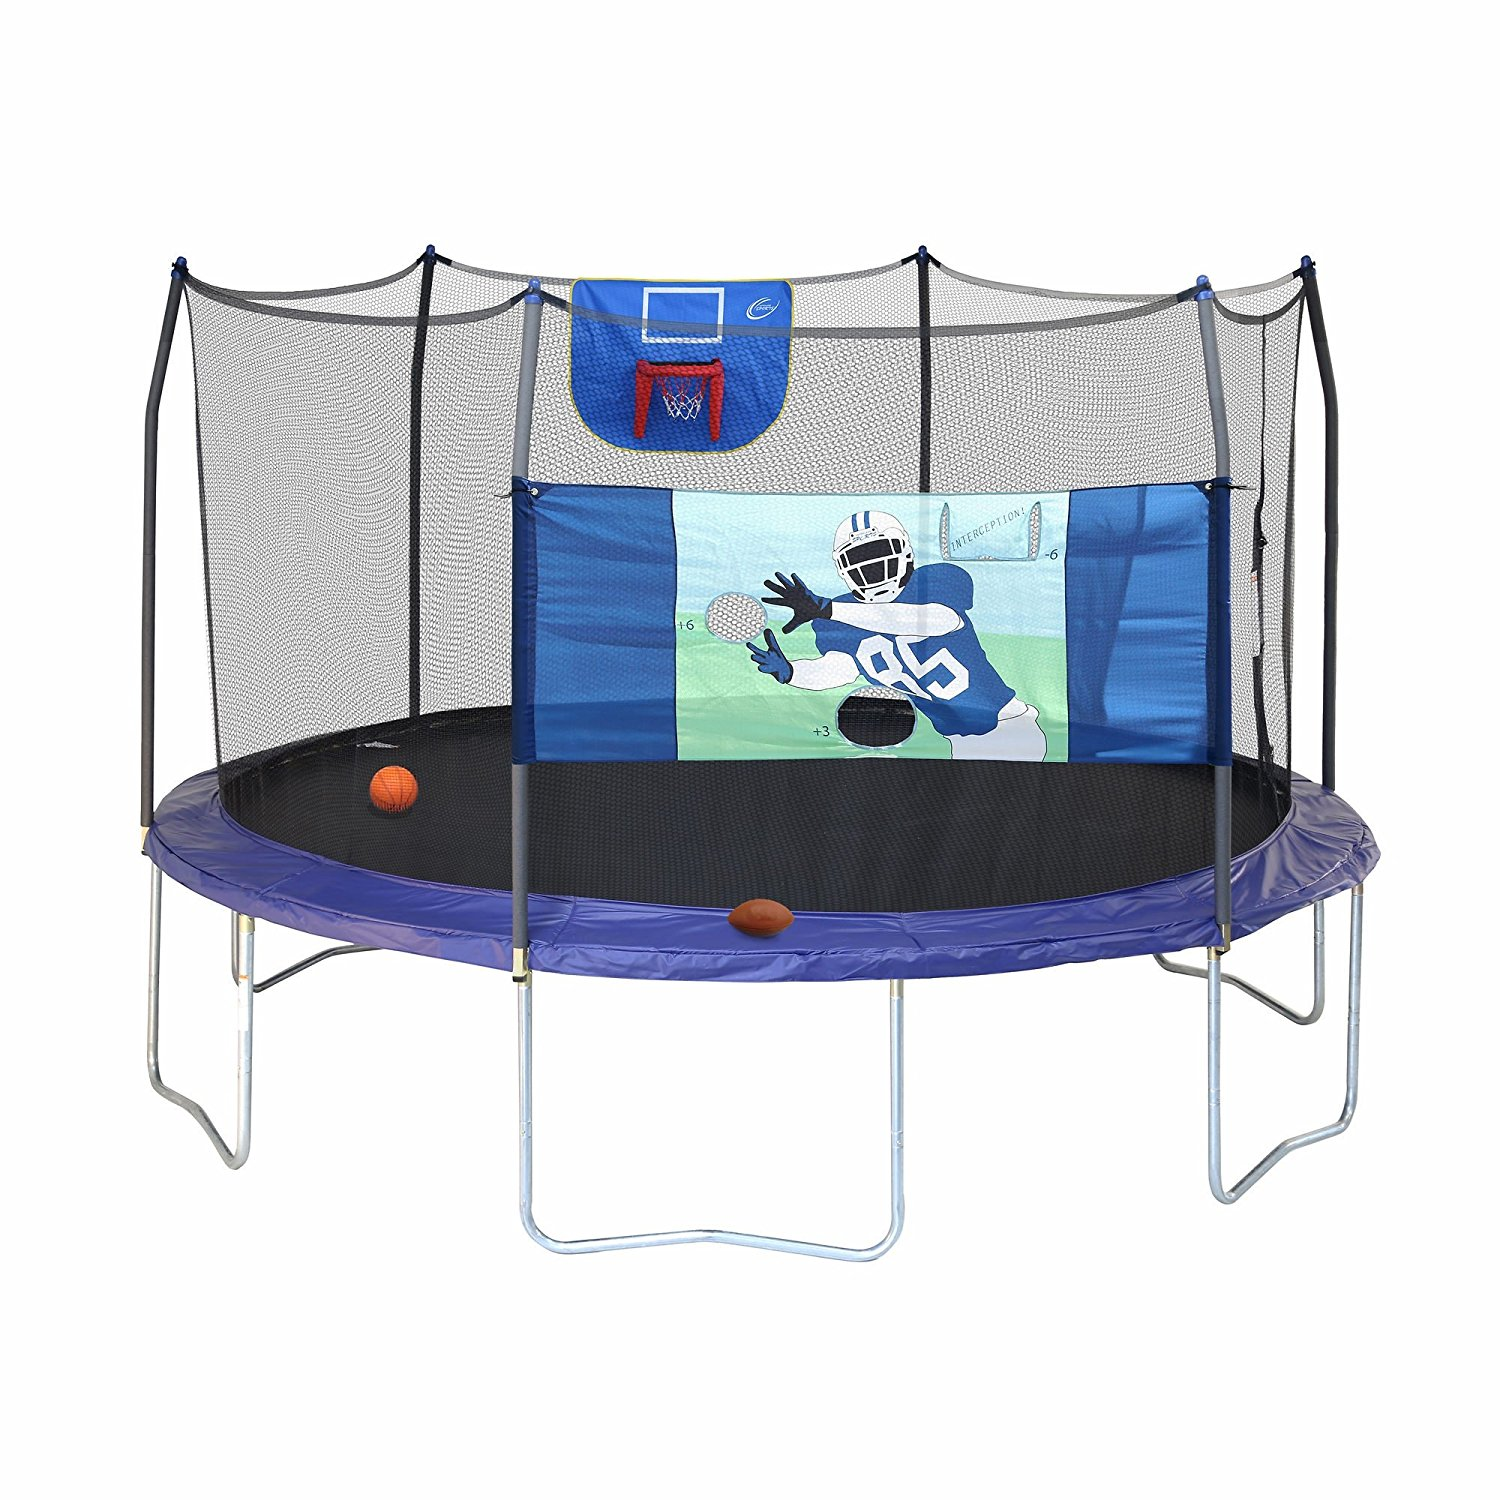 15u0027u0027 Sport Arena Tr&oline includes basketball hoop football game basketball u0026 football. Black Friday Price After Discount $250  sc 1 st  WalletHub & 2016u0027s Best Things to Buy on Black Friday | WalletHub® islam-shia.org